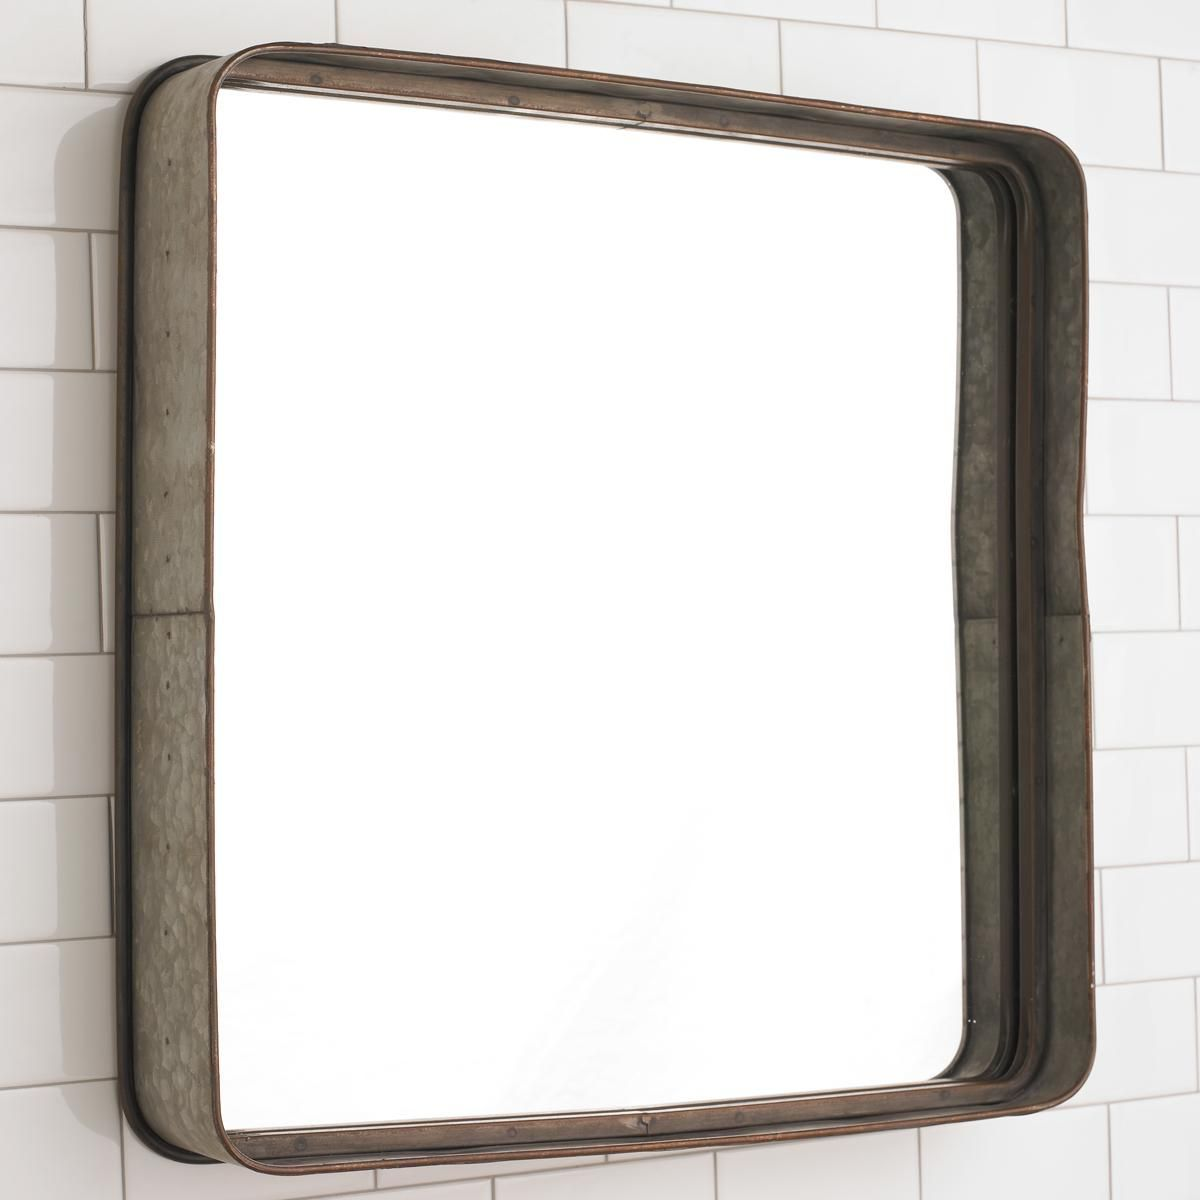 Metal Galvanized Squared Mirror This Simple Framed Will Add A Touch Of Style To Bathroom Combine With Bronze Bath